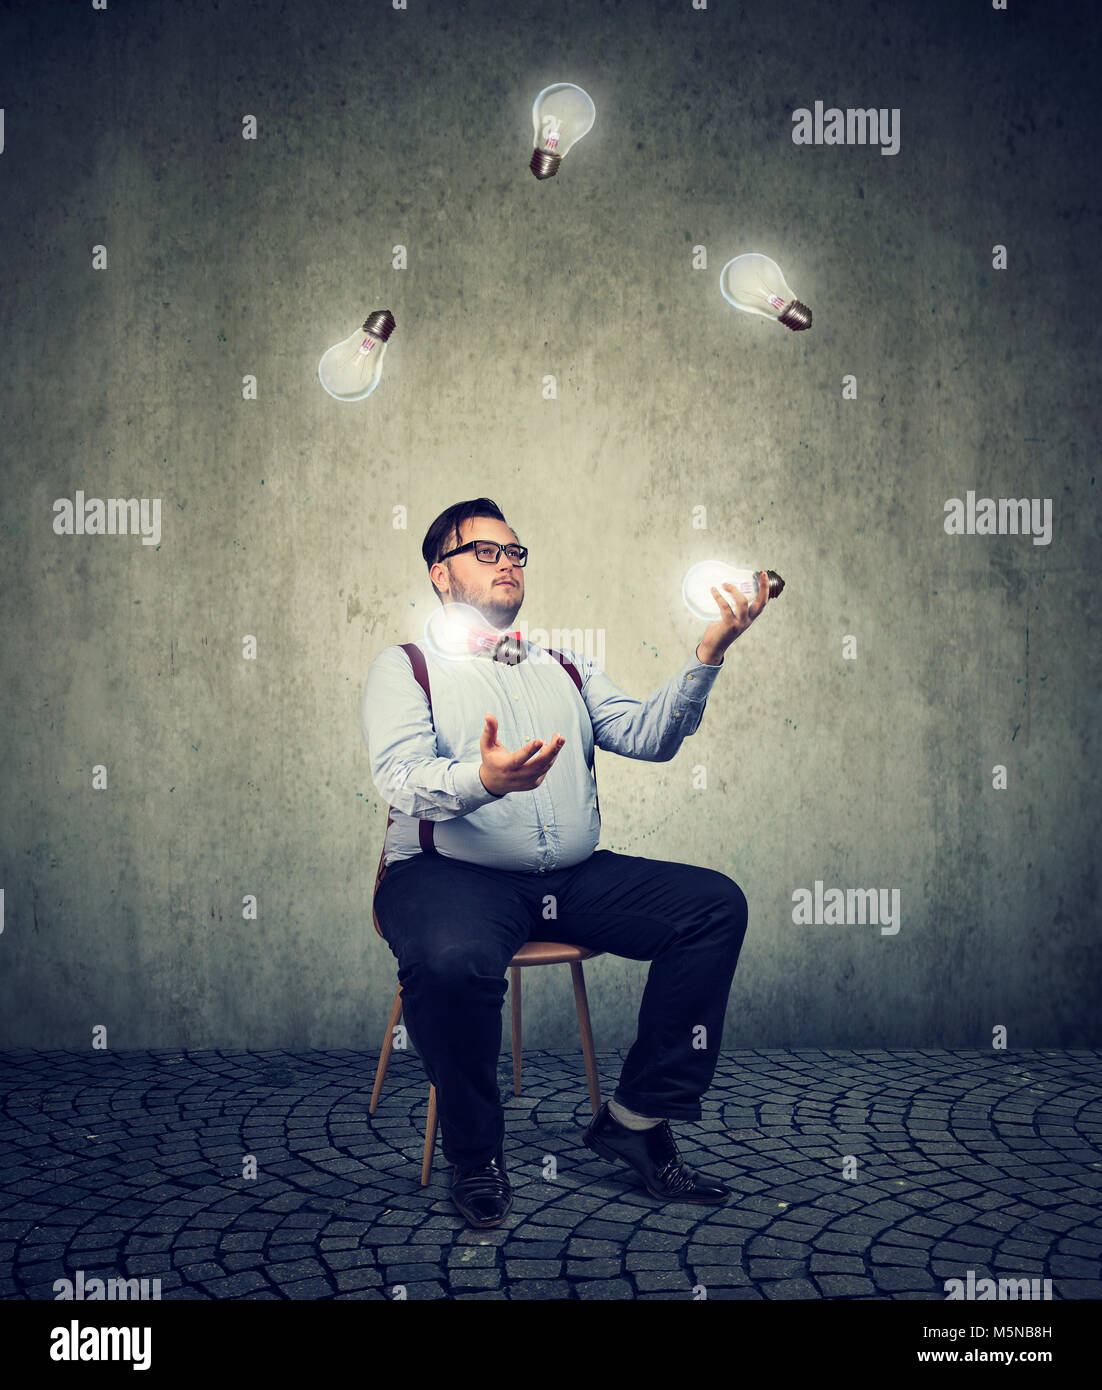 Young chubby man sitting on chair and juggling with light bulbs being genius. - Stock Image